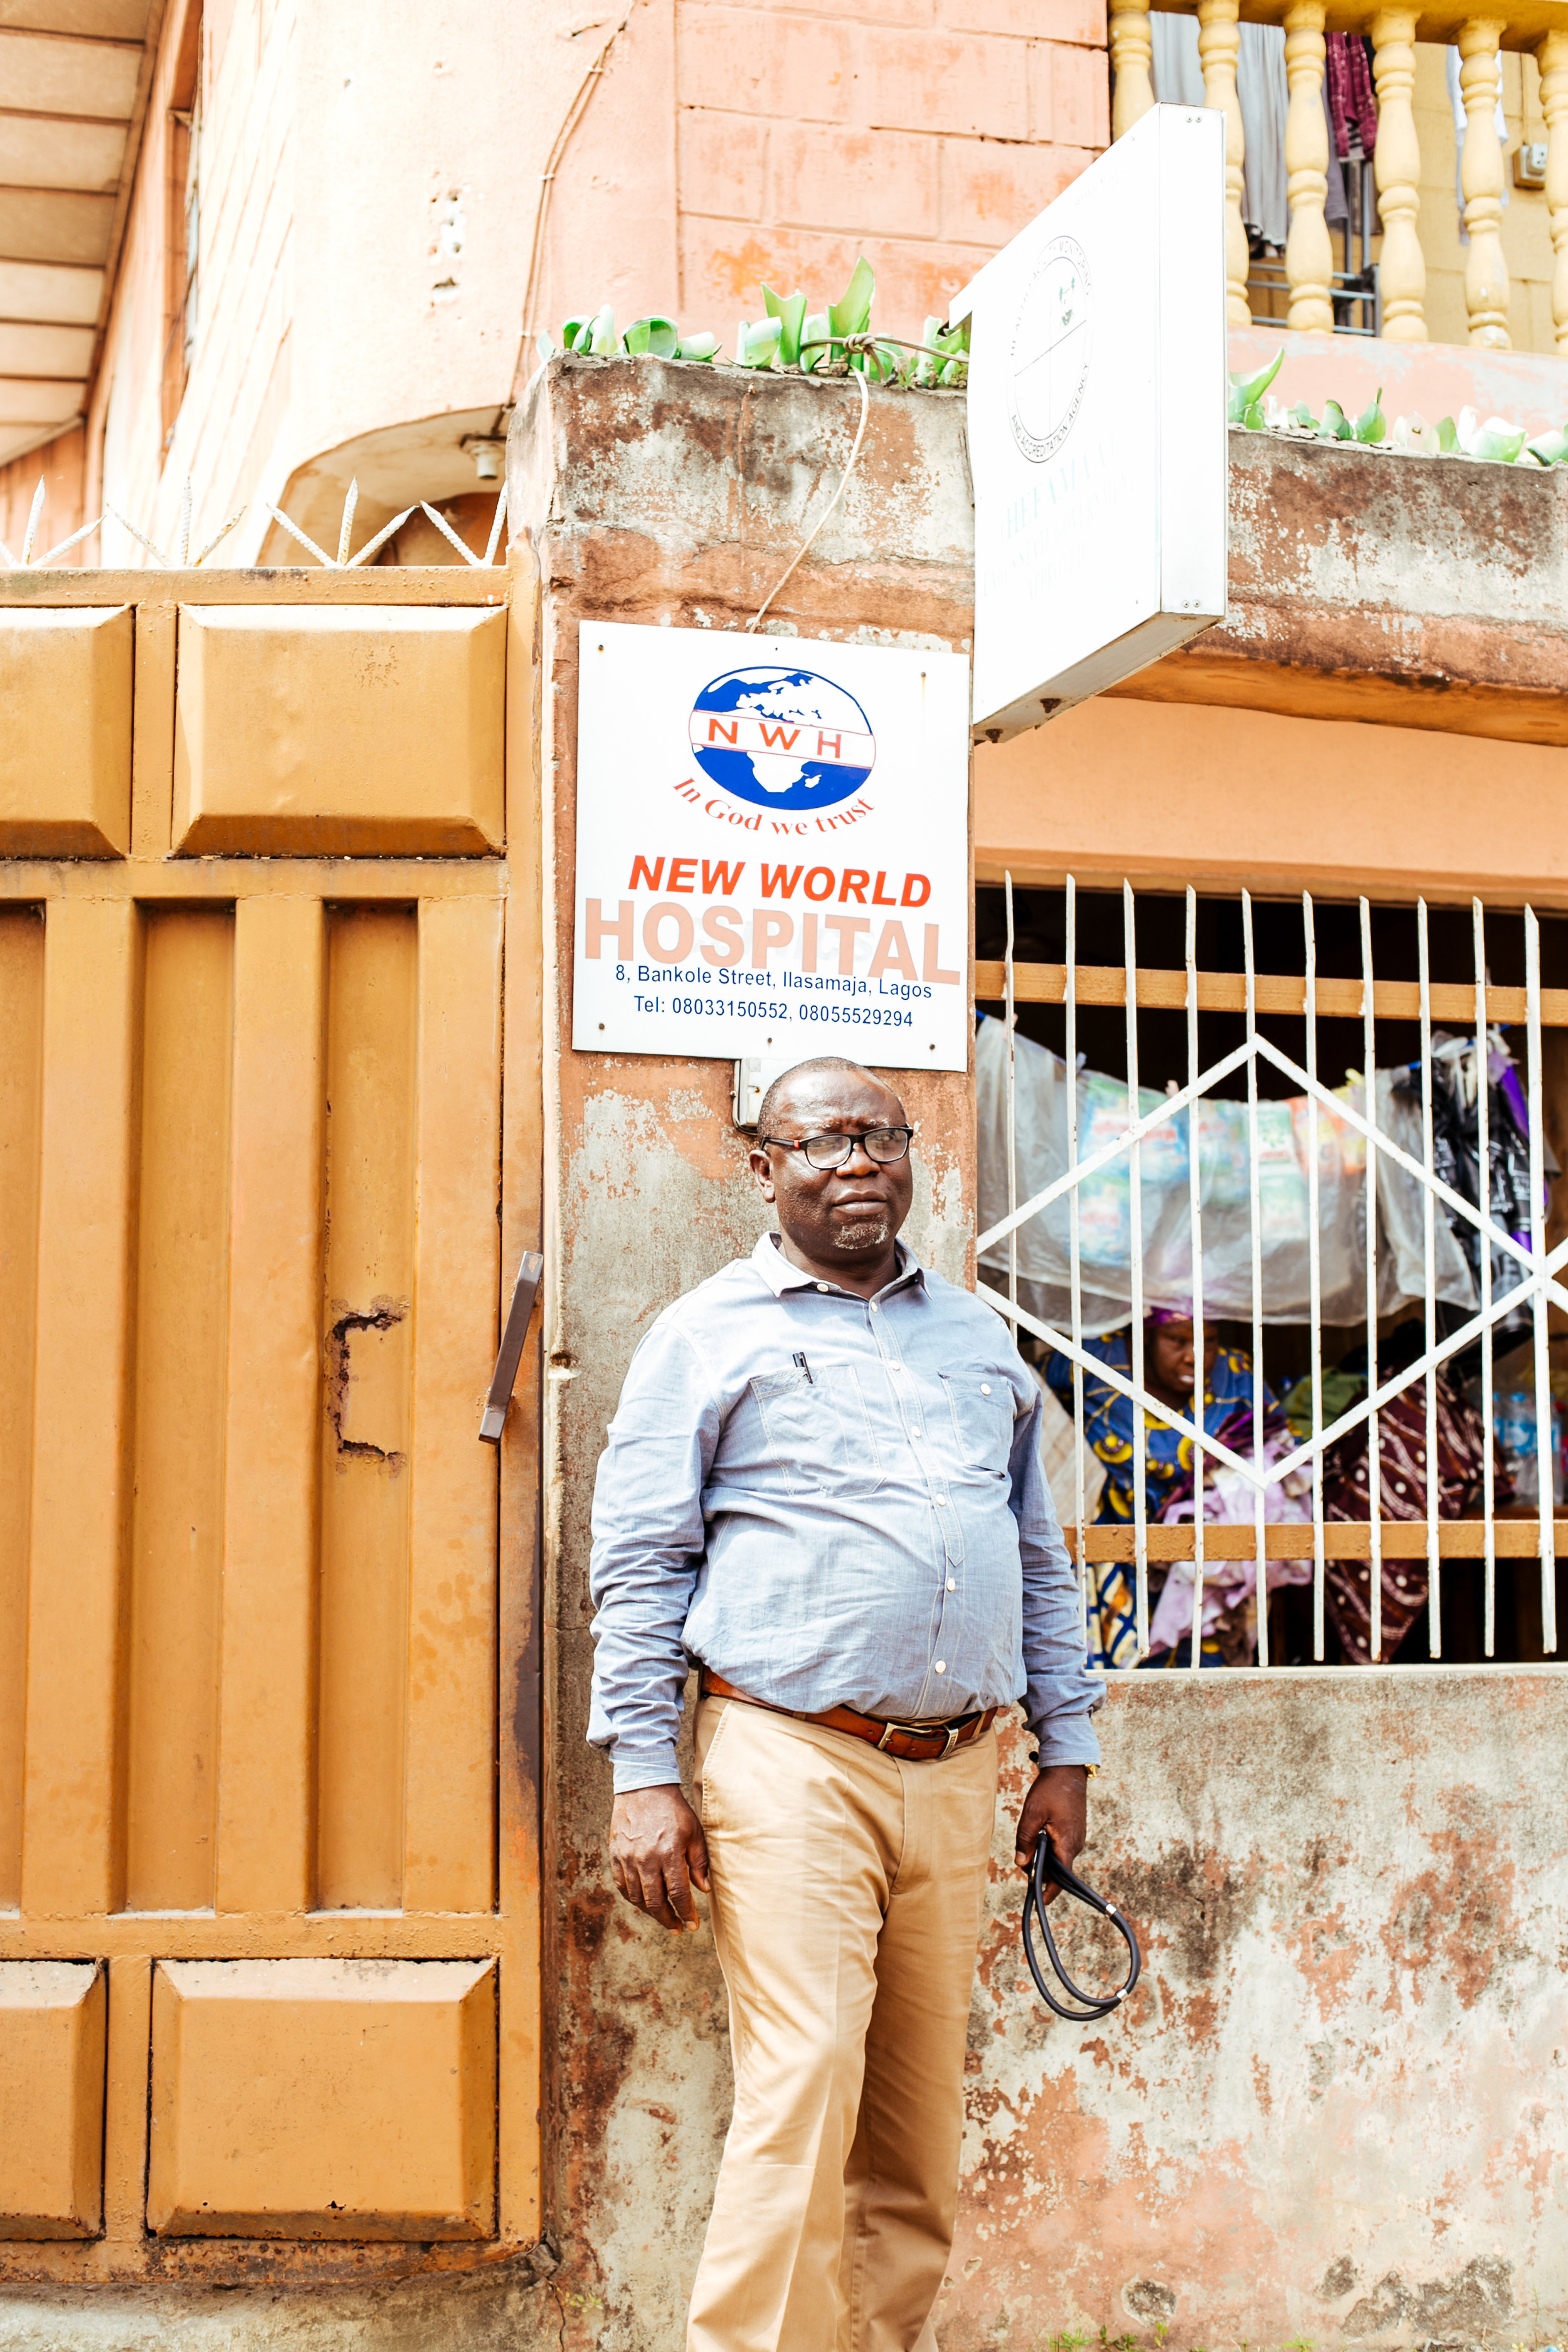 Dr. Musa - New World Hospital, a community-based clinic in Lagos, Nigeria.